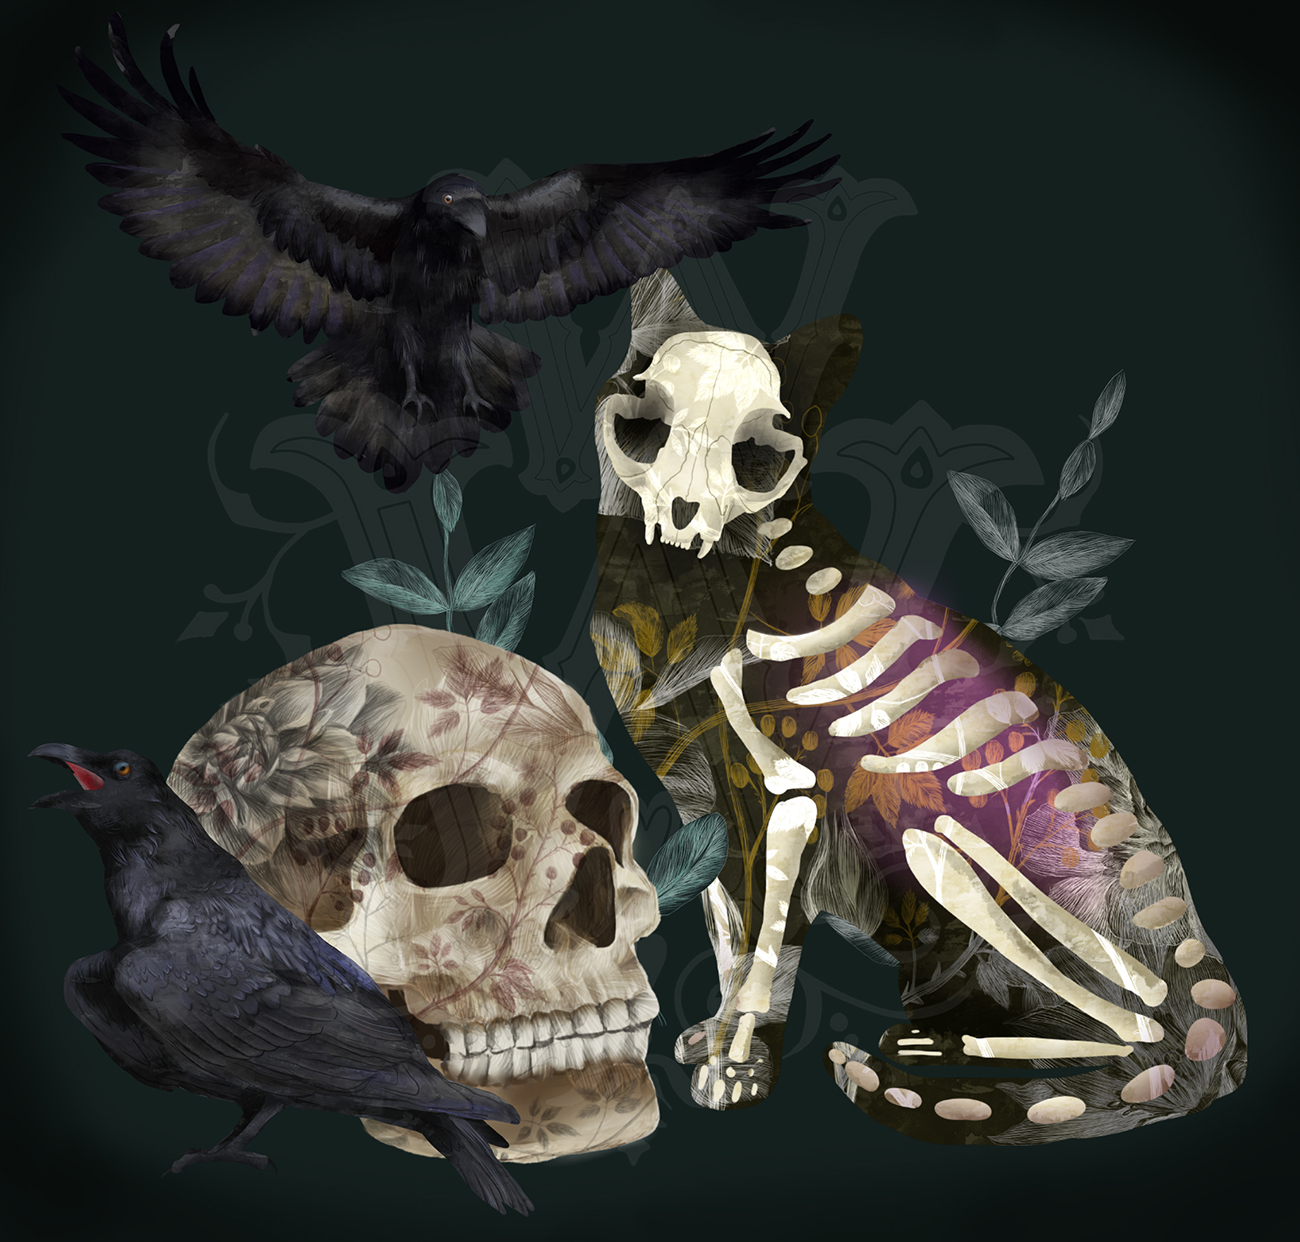 Halloween spooky clipart with skeleton cats, witch skull example image 4